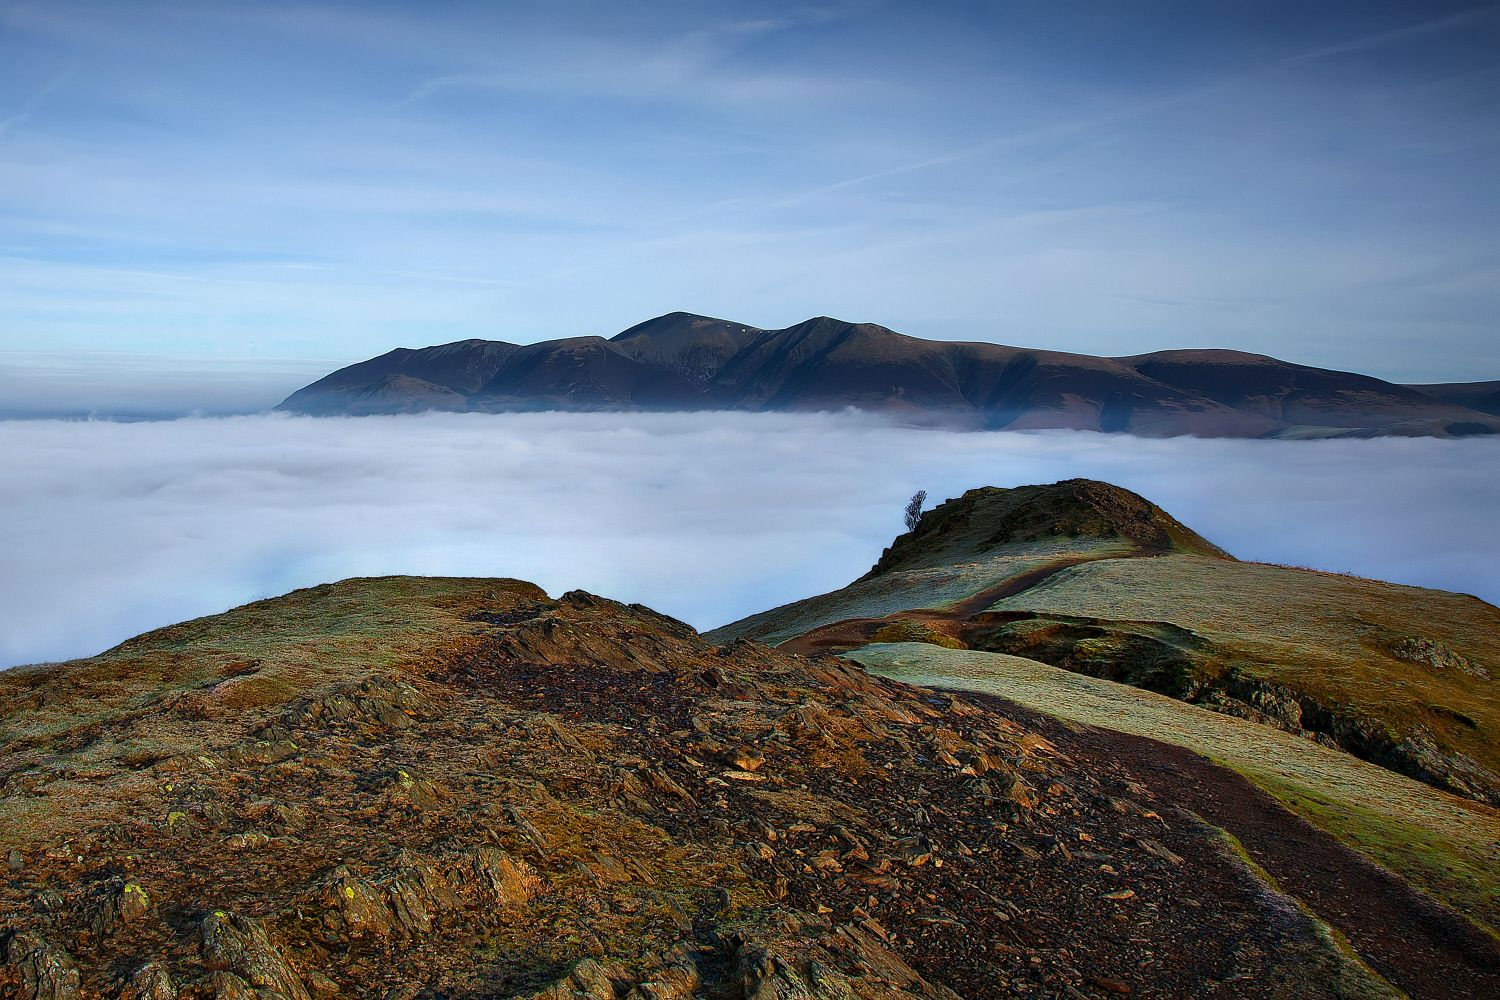 A fantastic cloud inversion showing Skiddaw appearing from out of the clouds. Taken from Catbells.